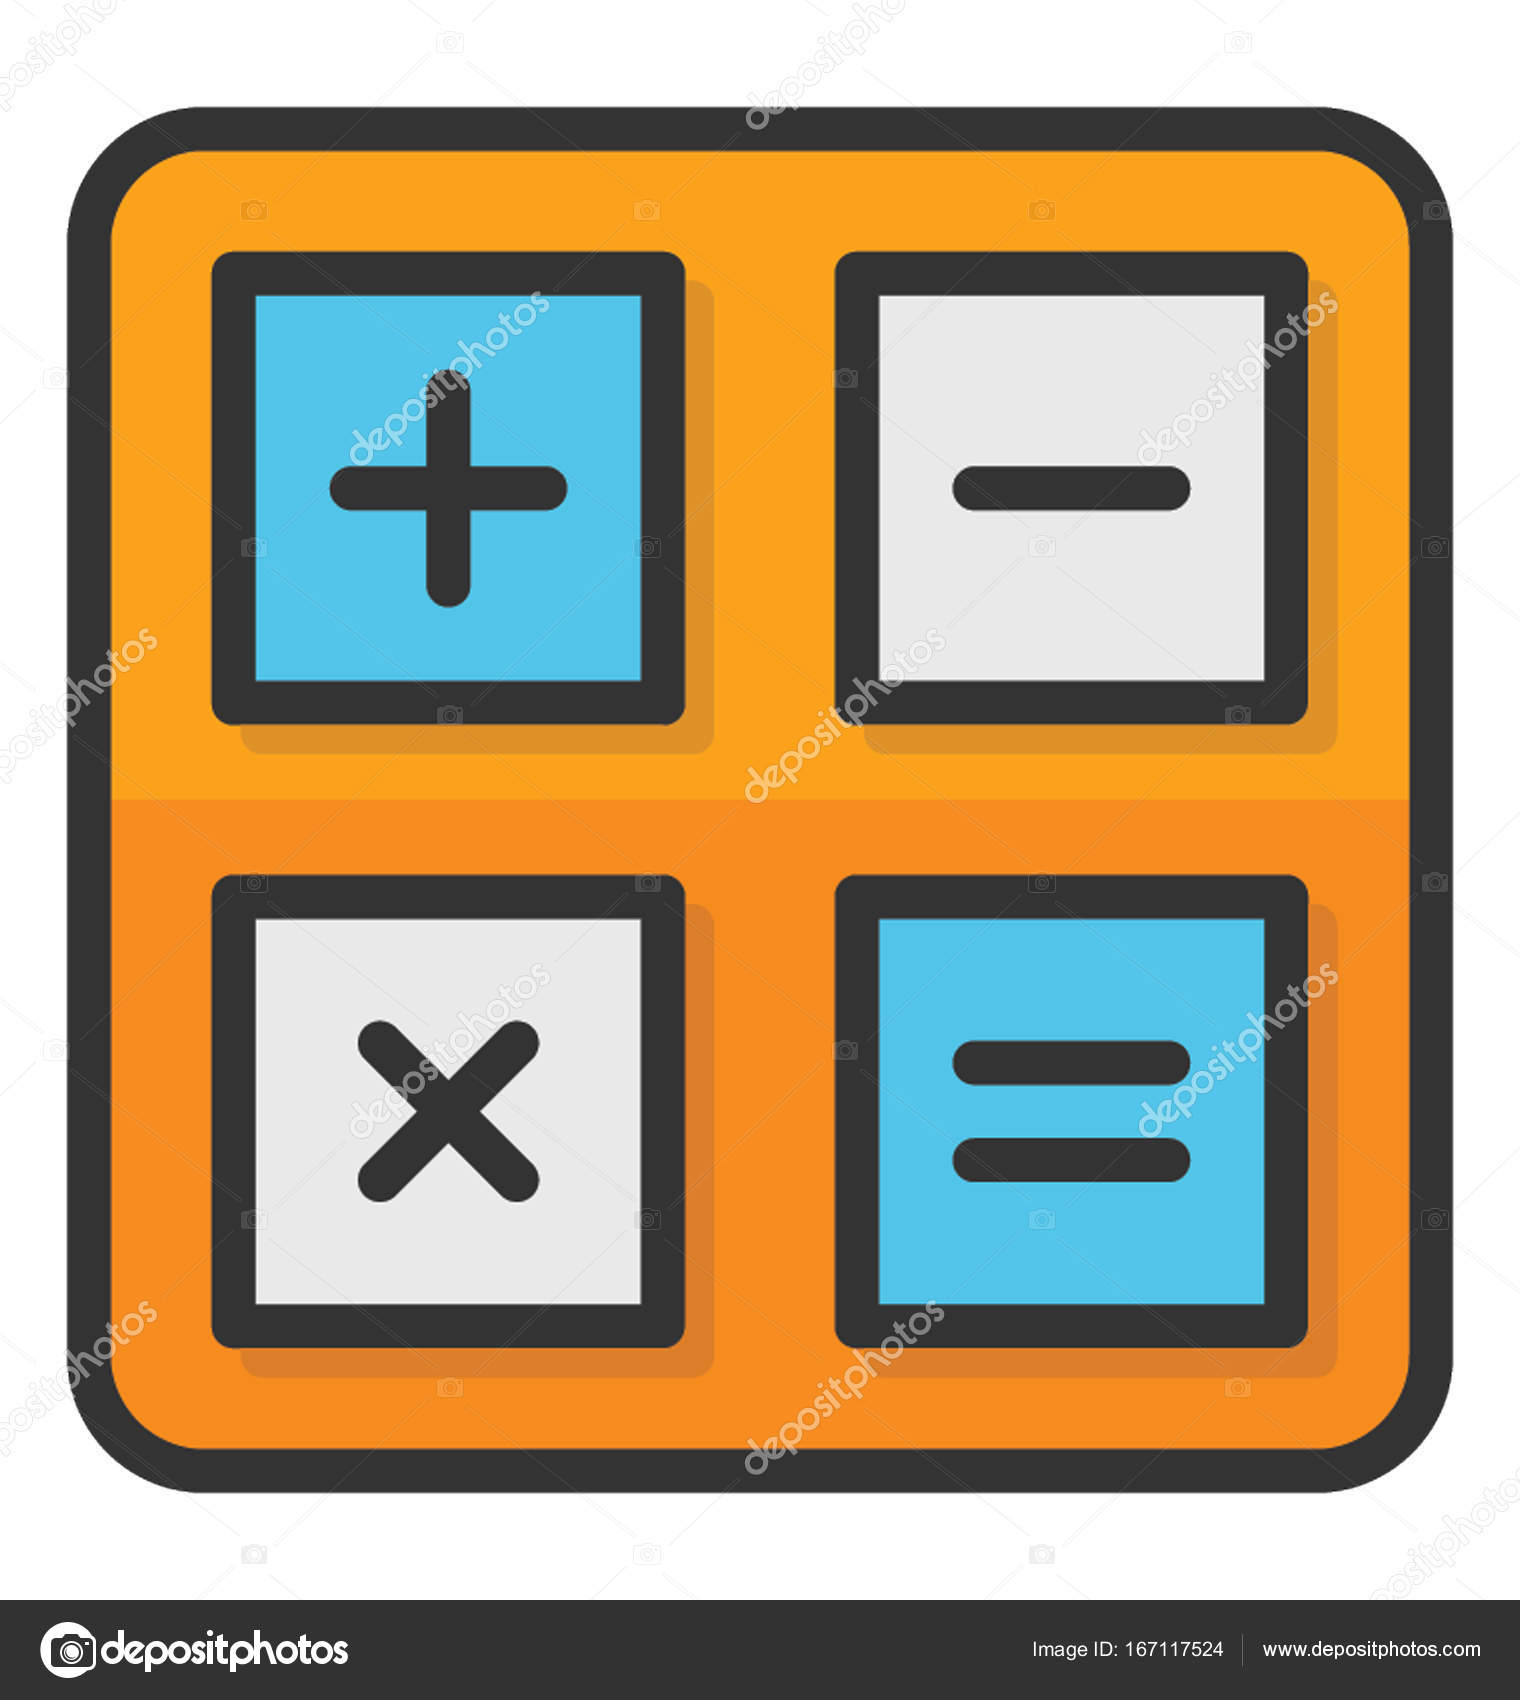 Math Symbols Vector Icon Stock Vector Vectorsmarket 167117524